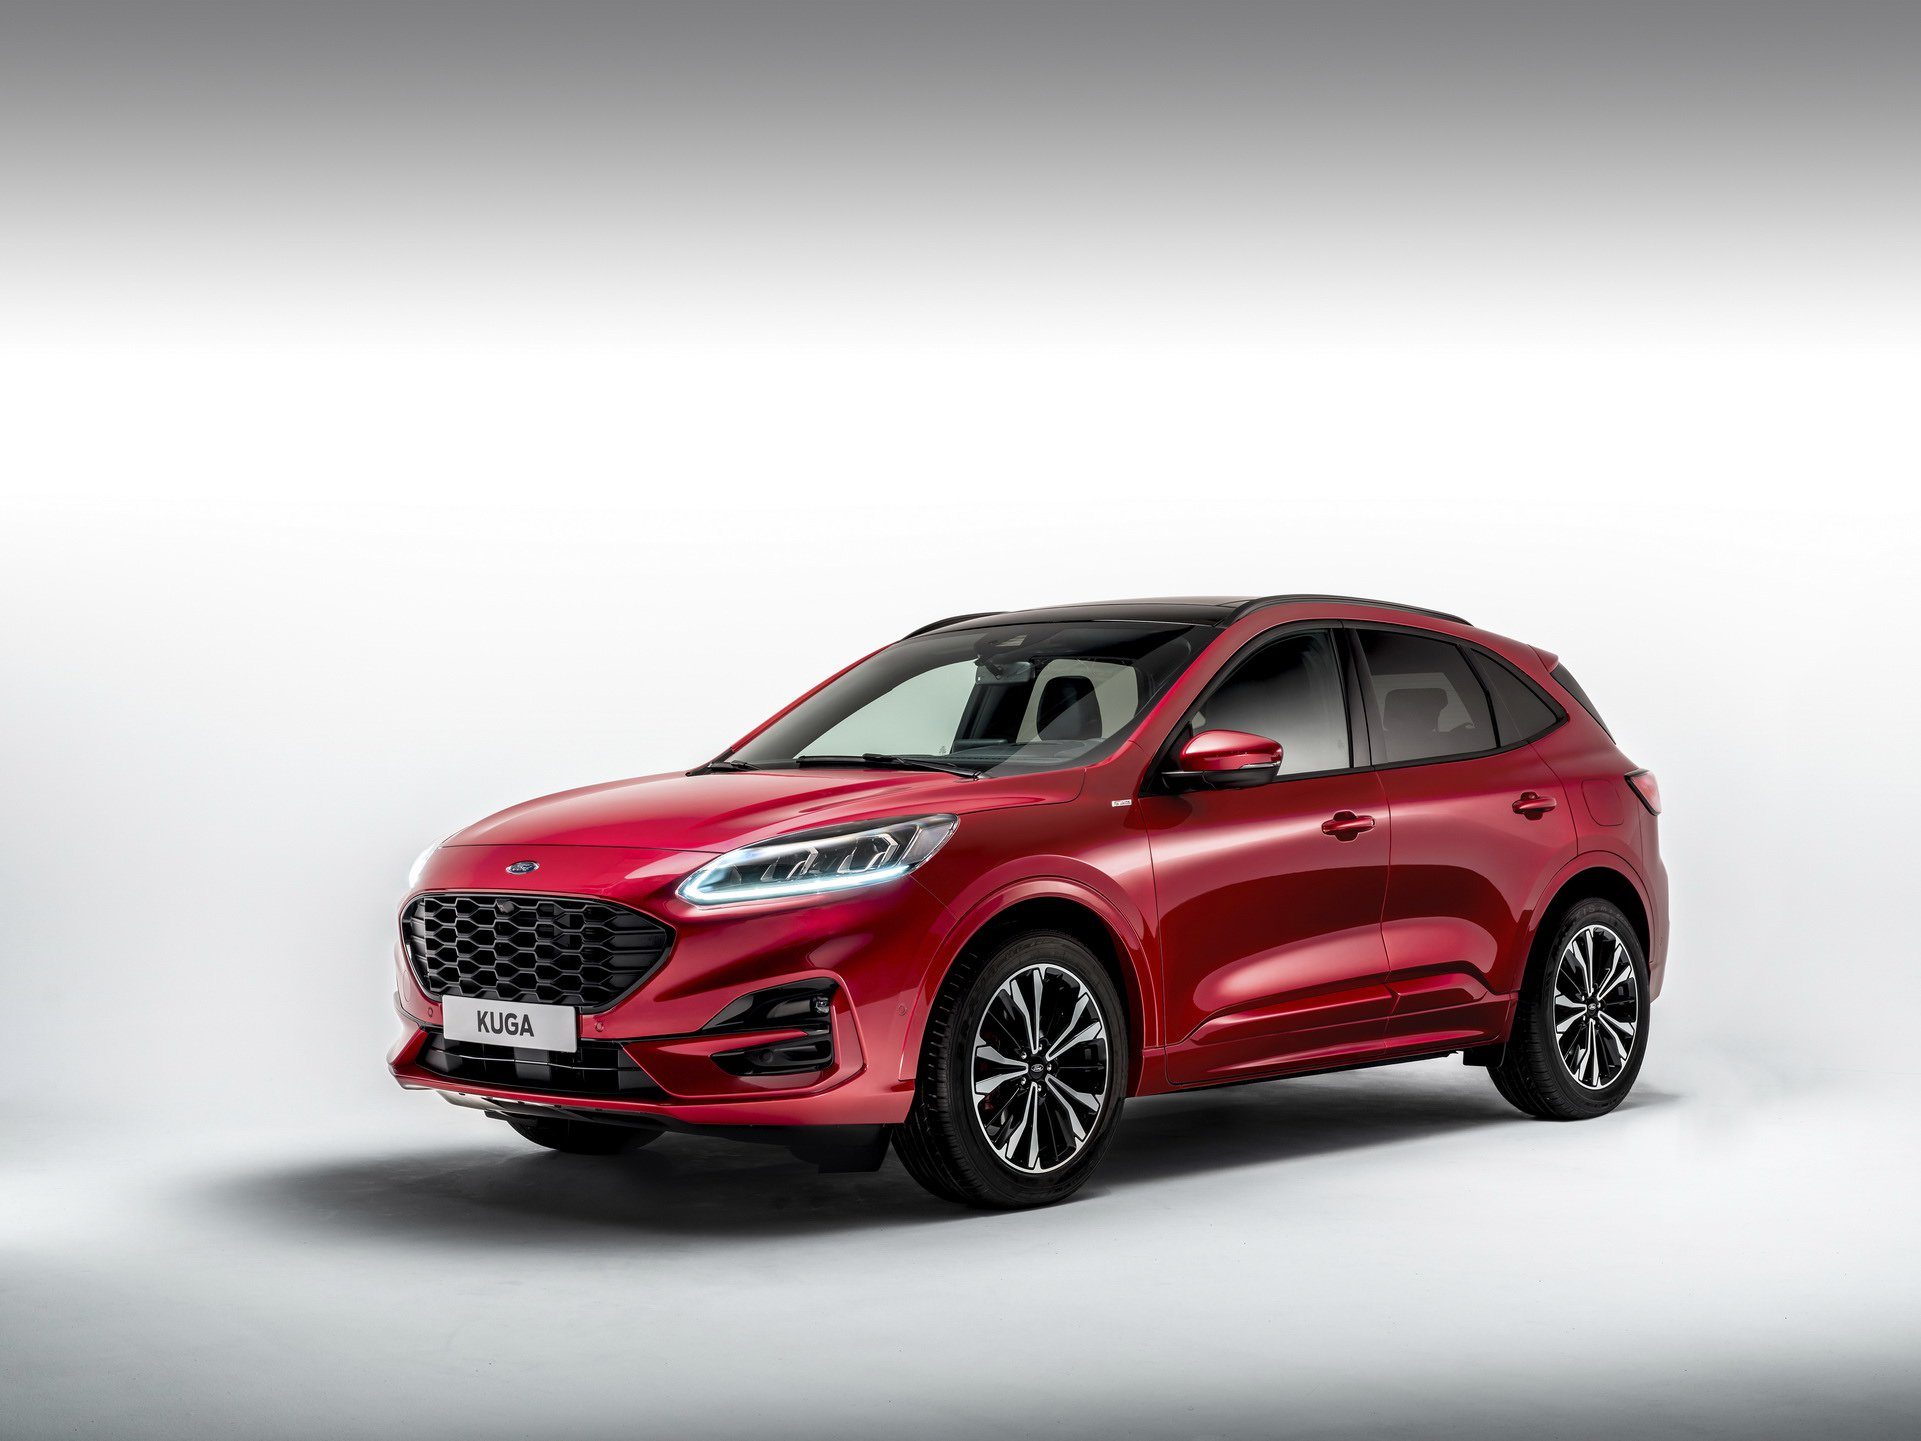 larger-lighter-2020-ford-kuga-debuts-with-three-hybrid-engines_20.jpg